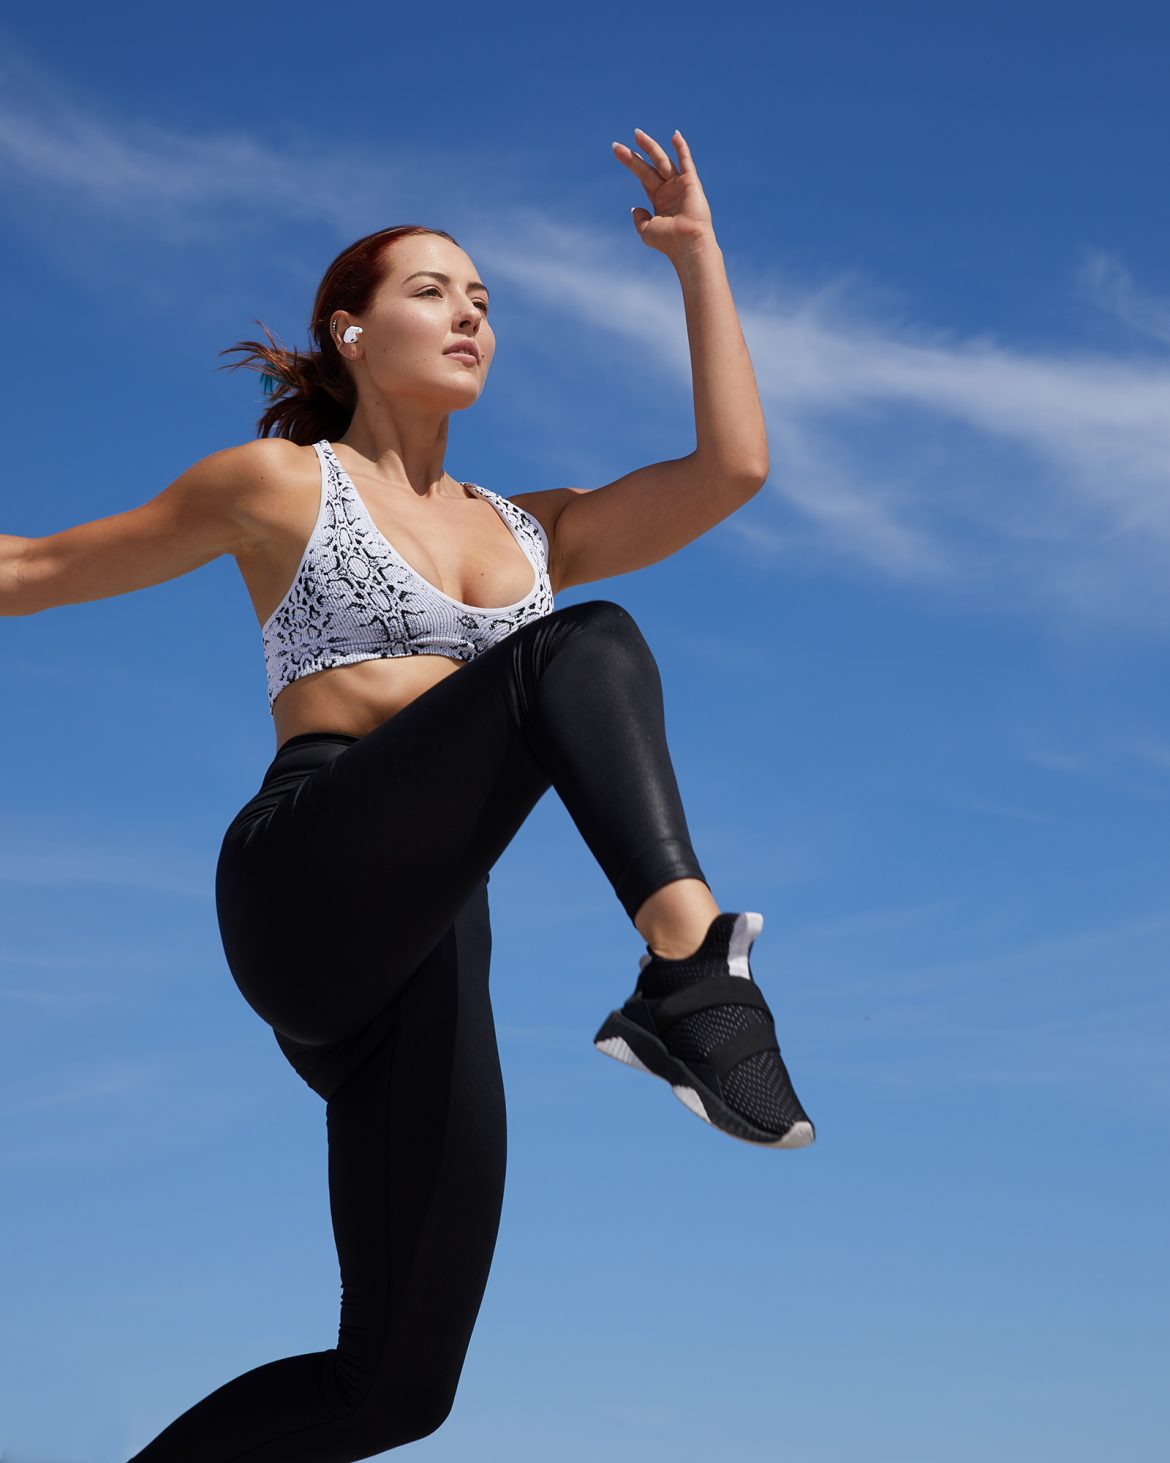 lifestyle Music dance fitness photography